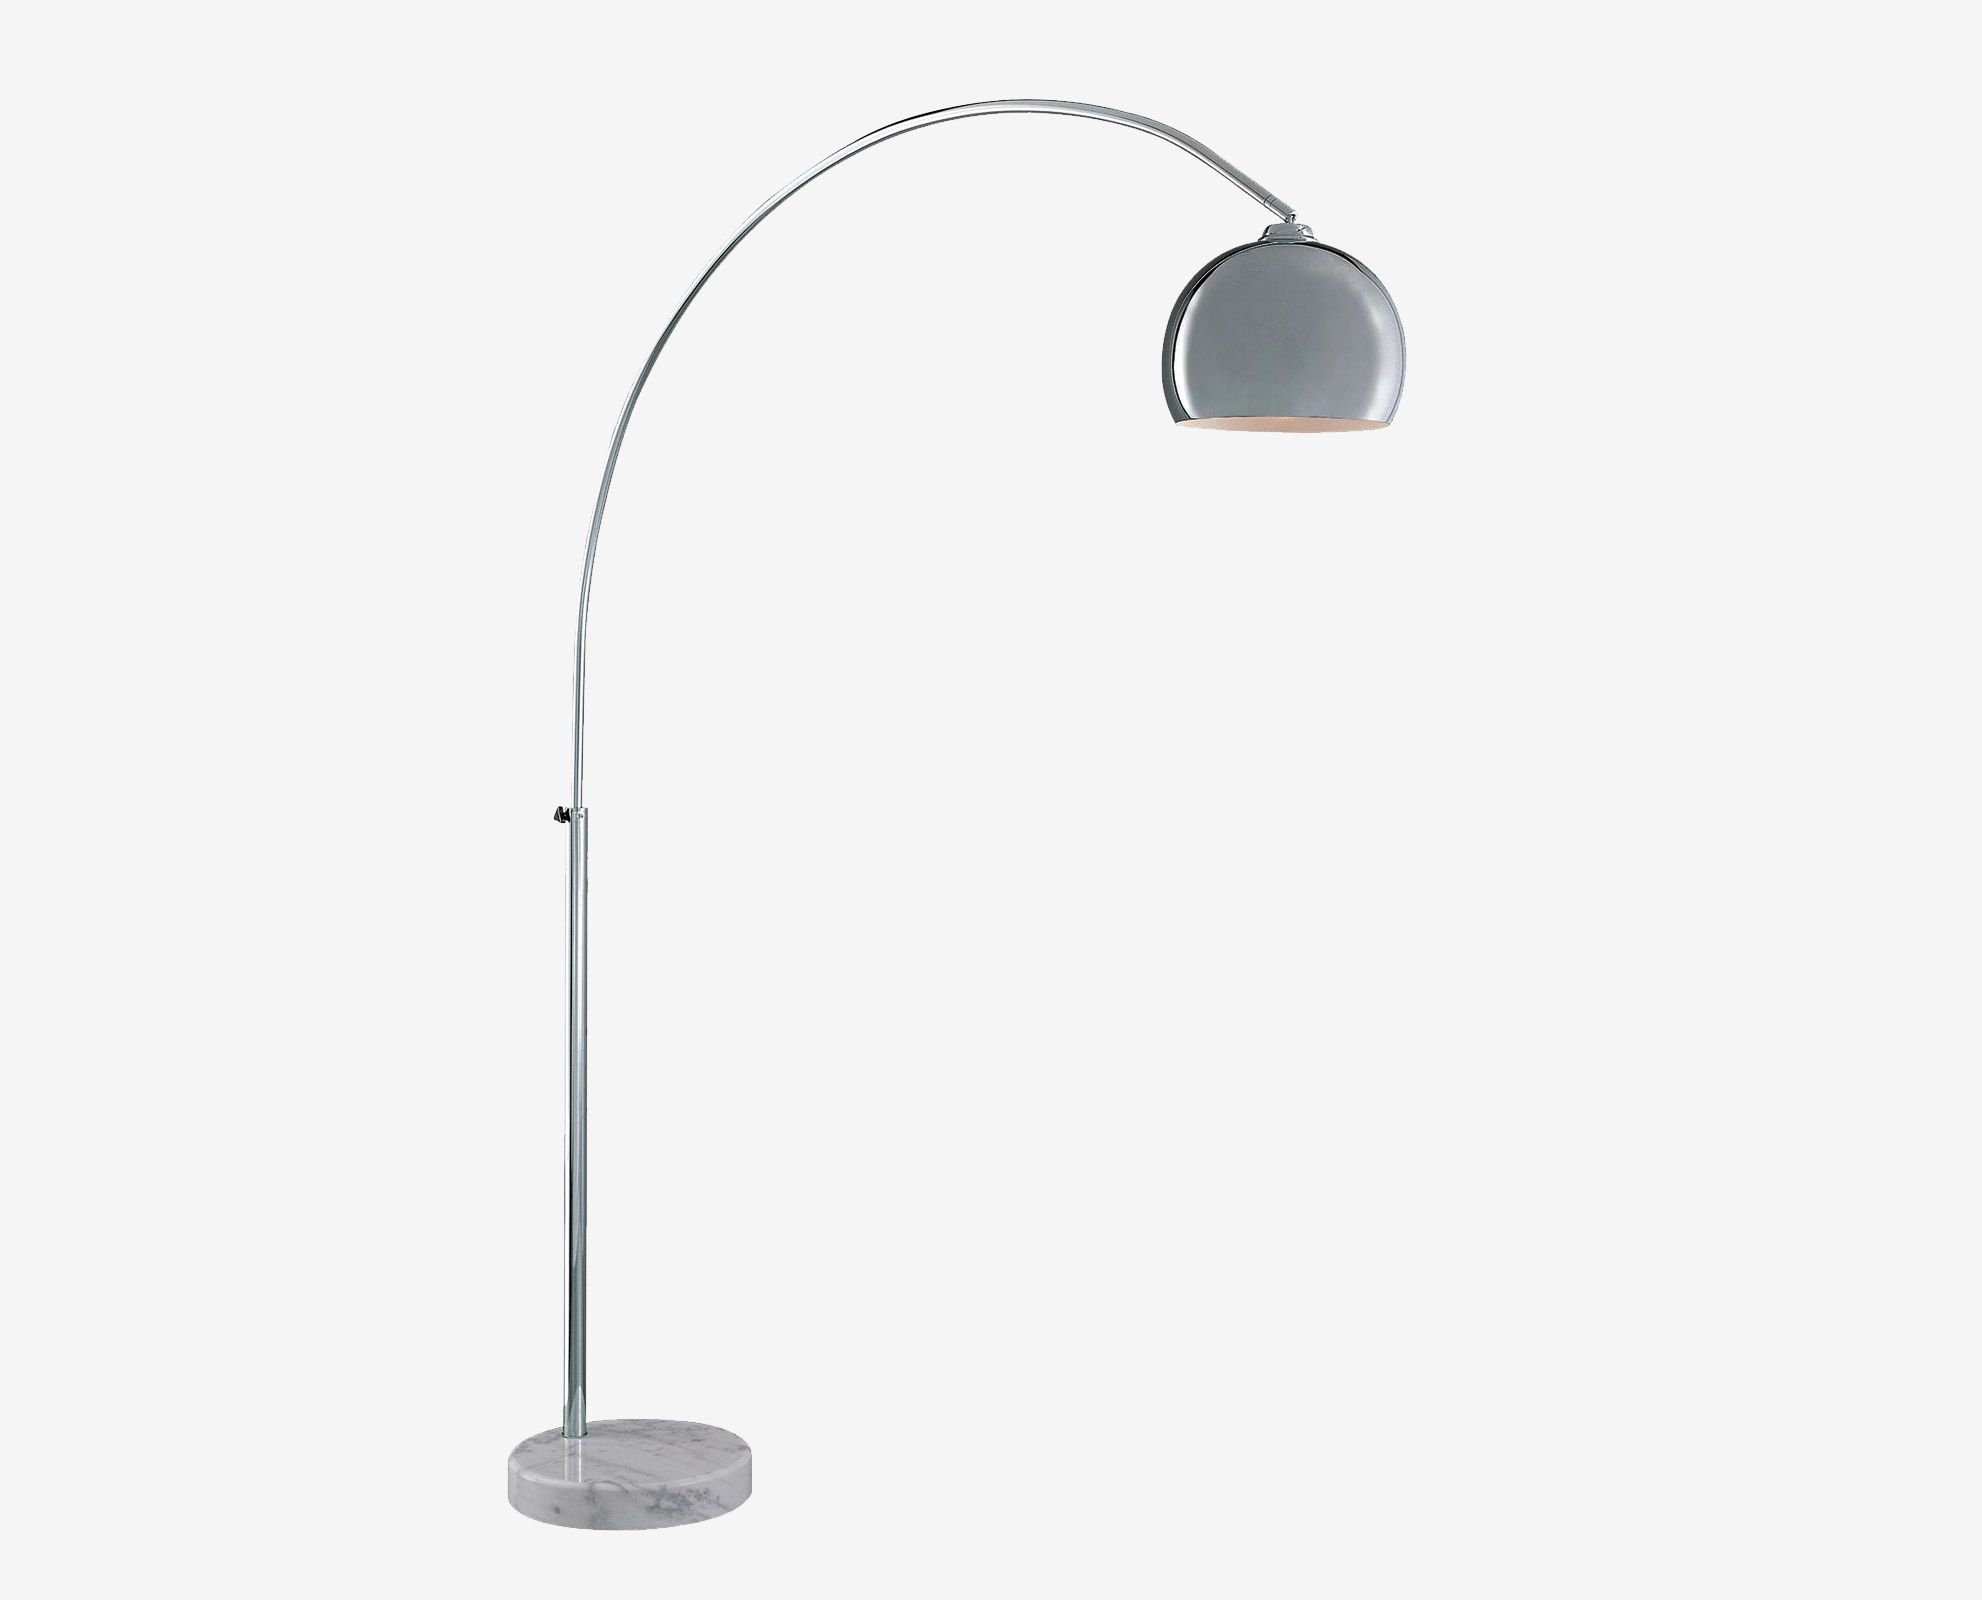 designs light up your living space with the arc floor lamp this modern - Arched Floor Lamp